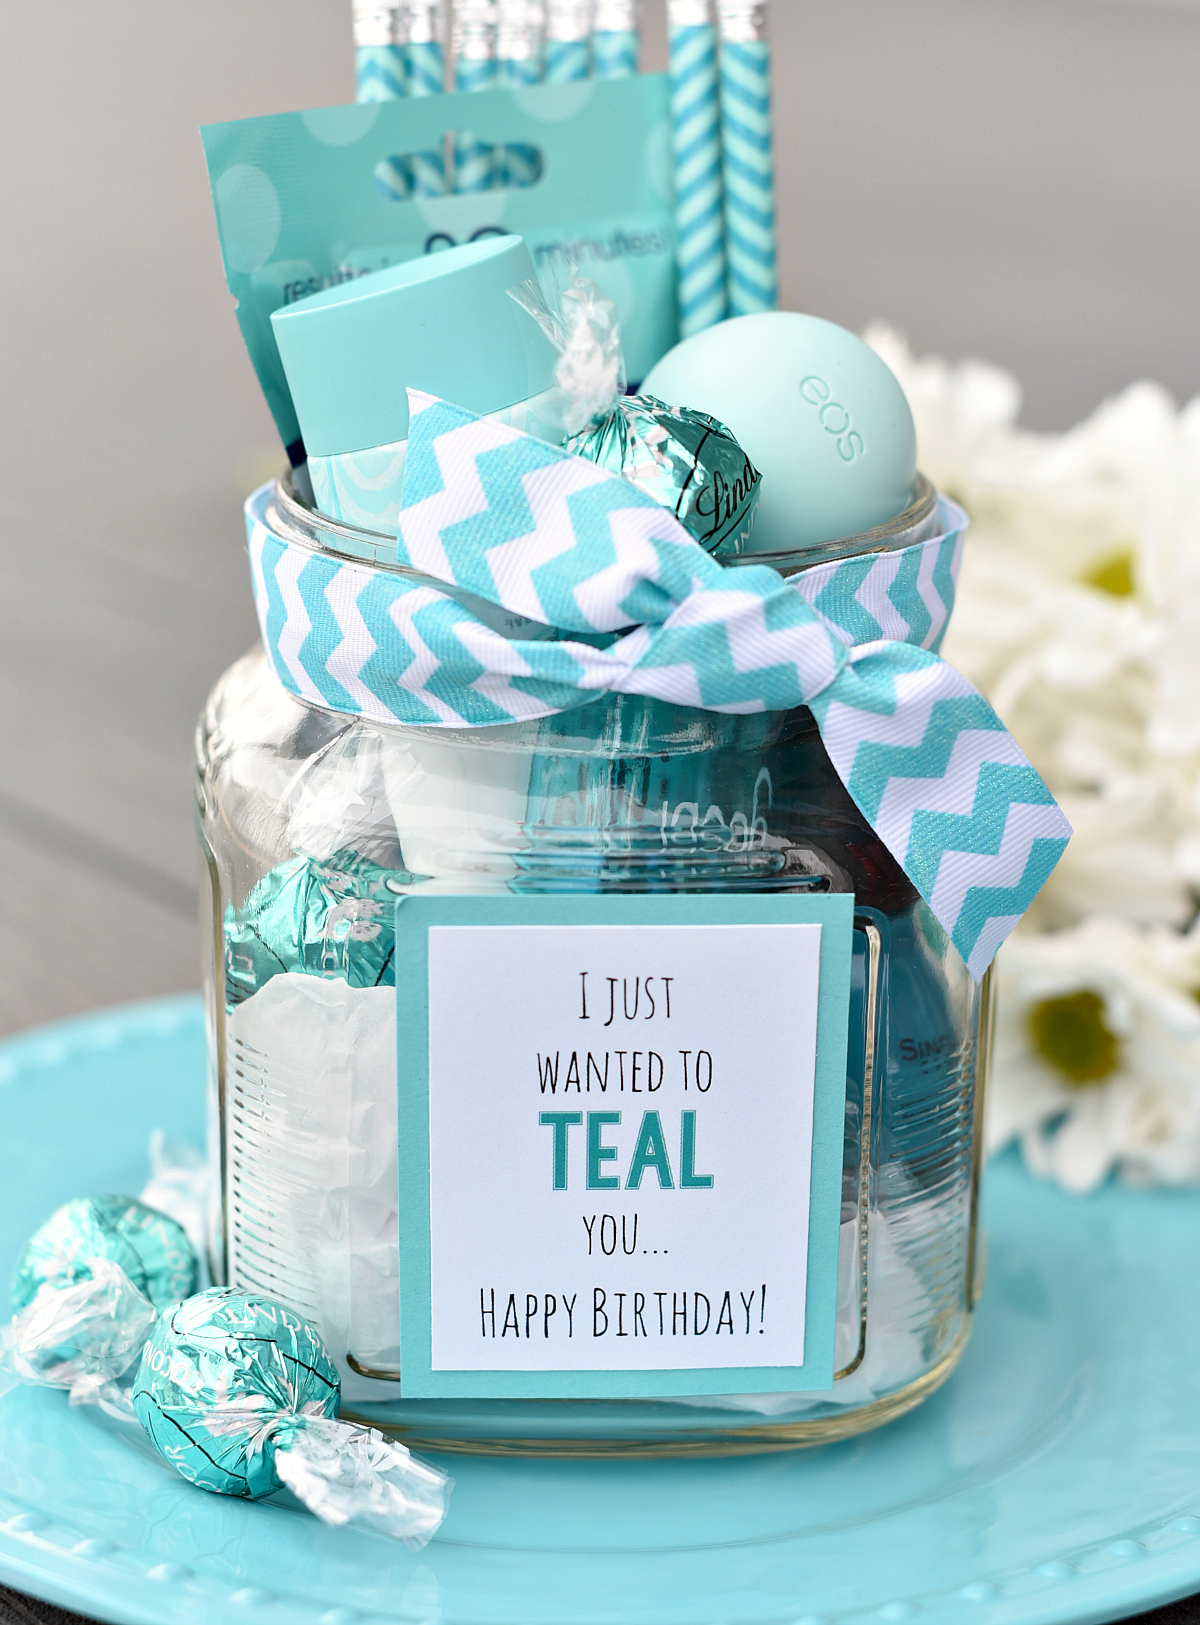 Teal Birthday Gift Idea For Friends Fun Squared